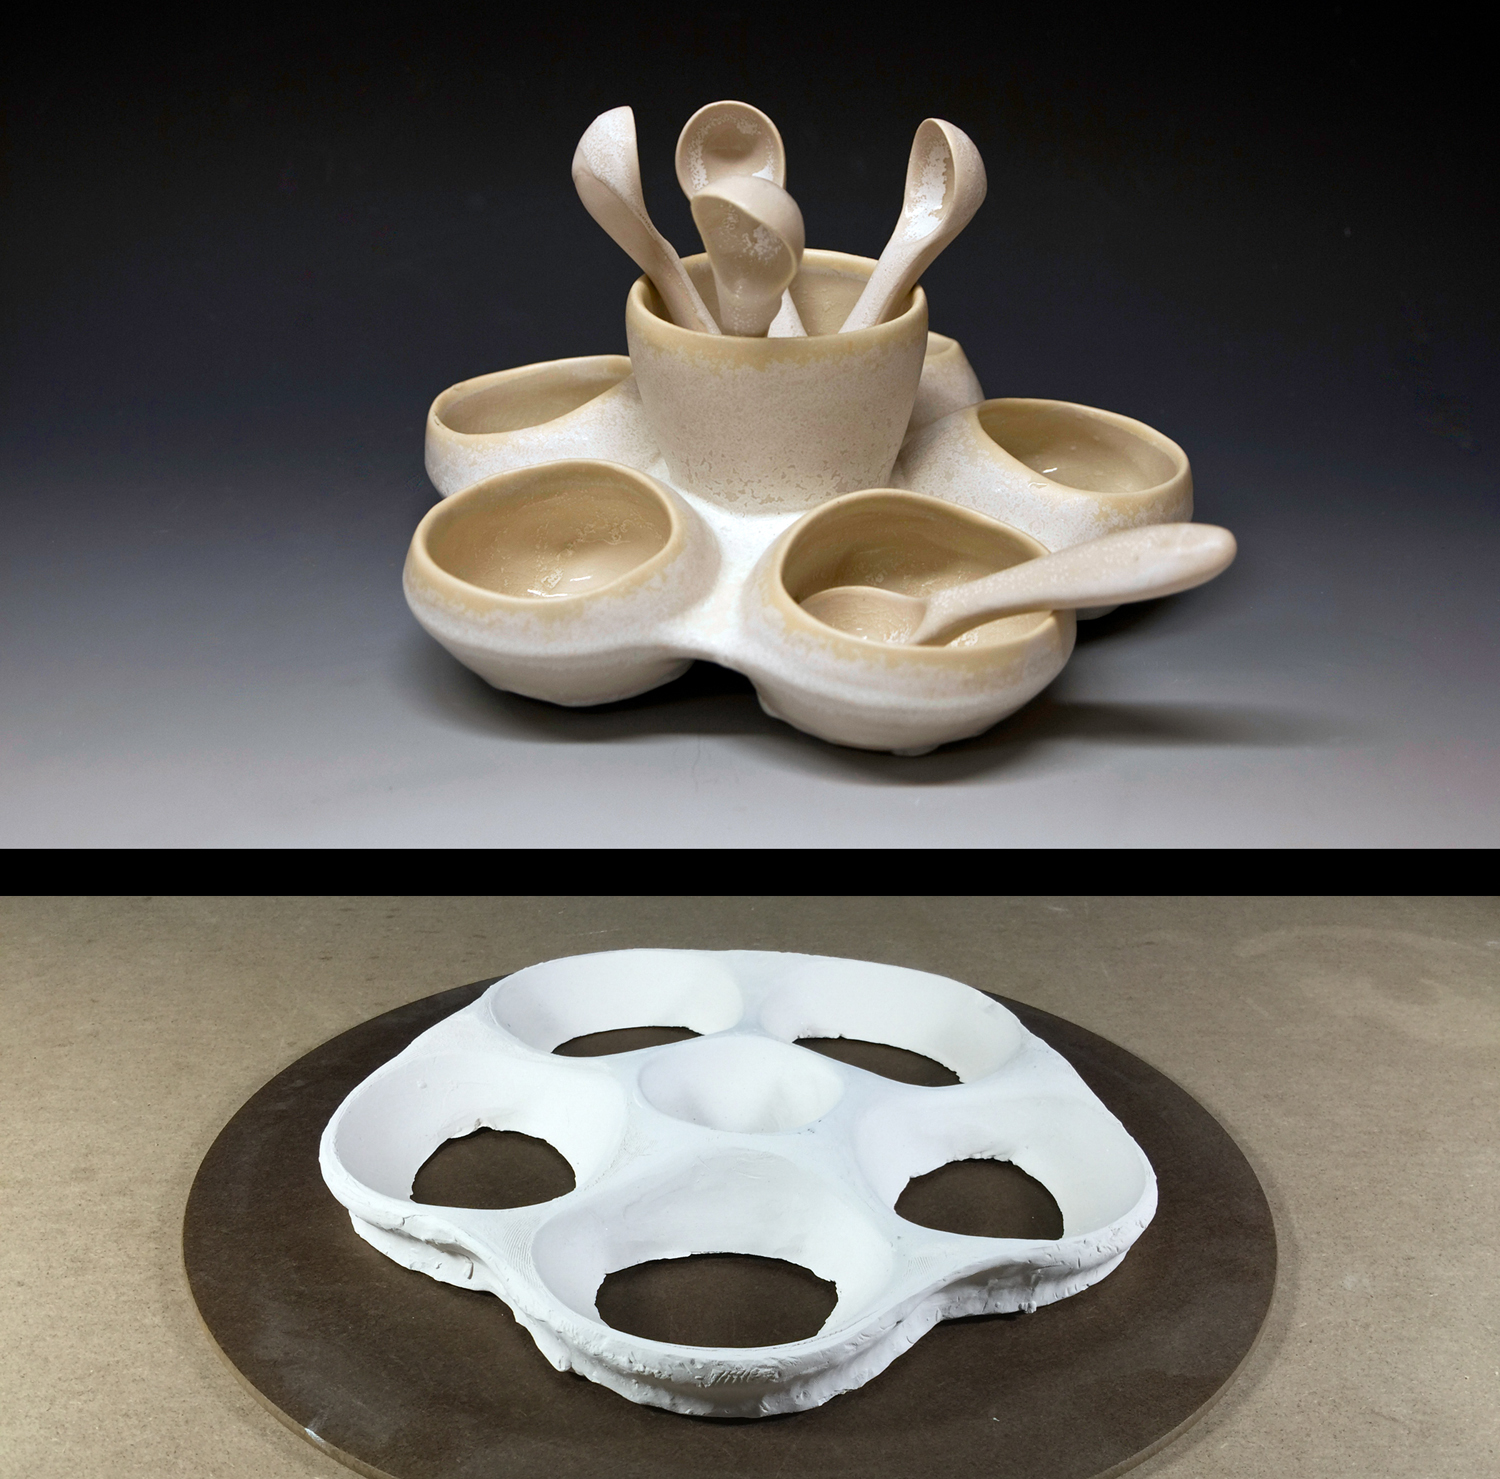 Bump mold used to create a larger, more complicated form.